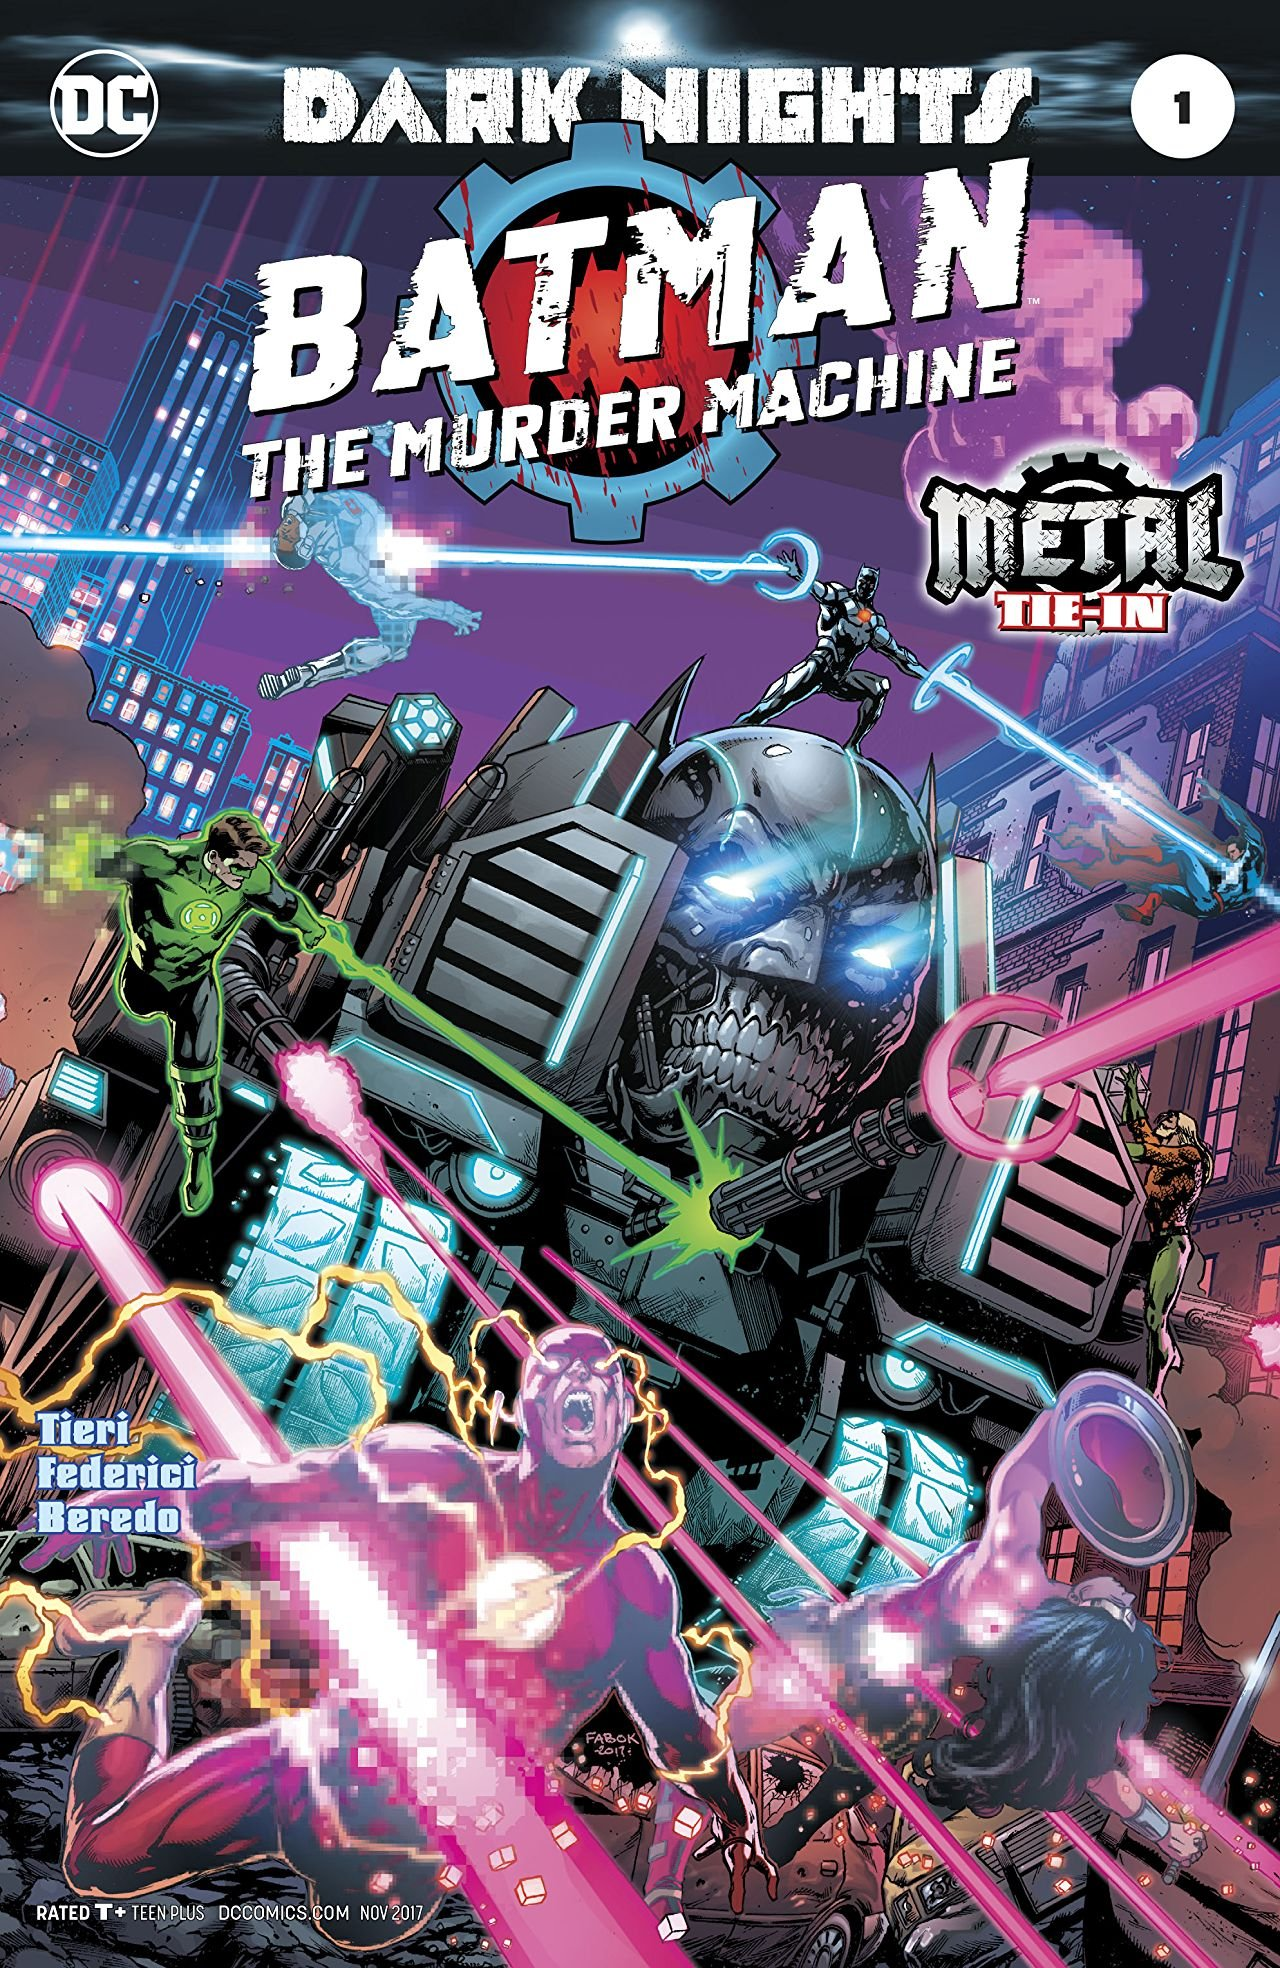 The Murder Machine